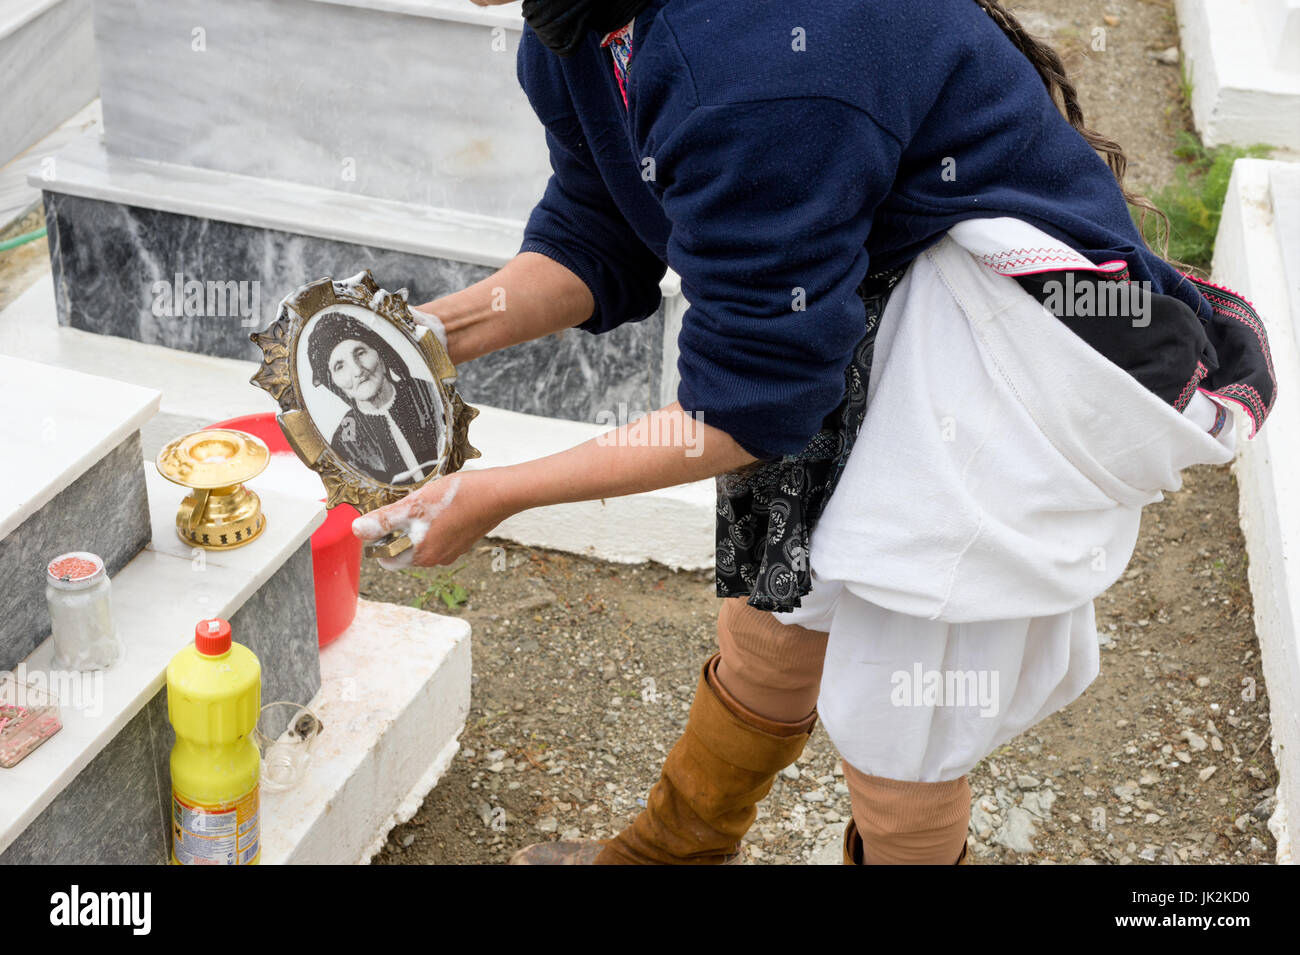 Greece, Aegean Islands, Olympos, Karpathos island,  Cleaning of the cemetery and tombs before Easter Stock Photo